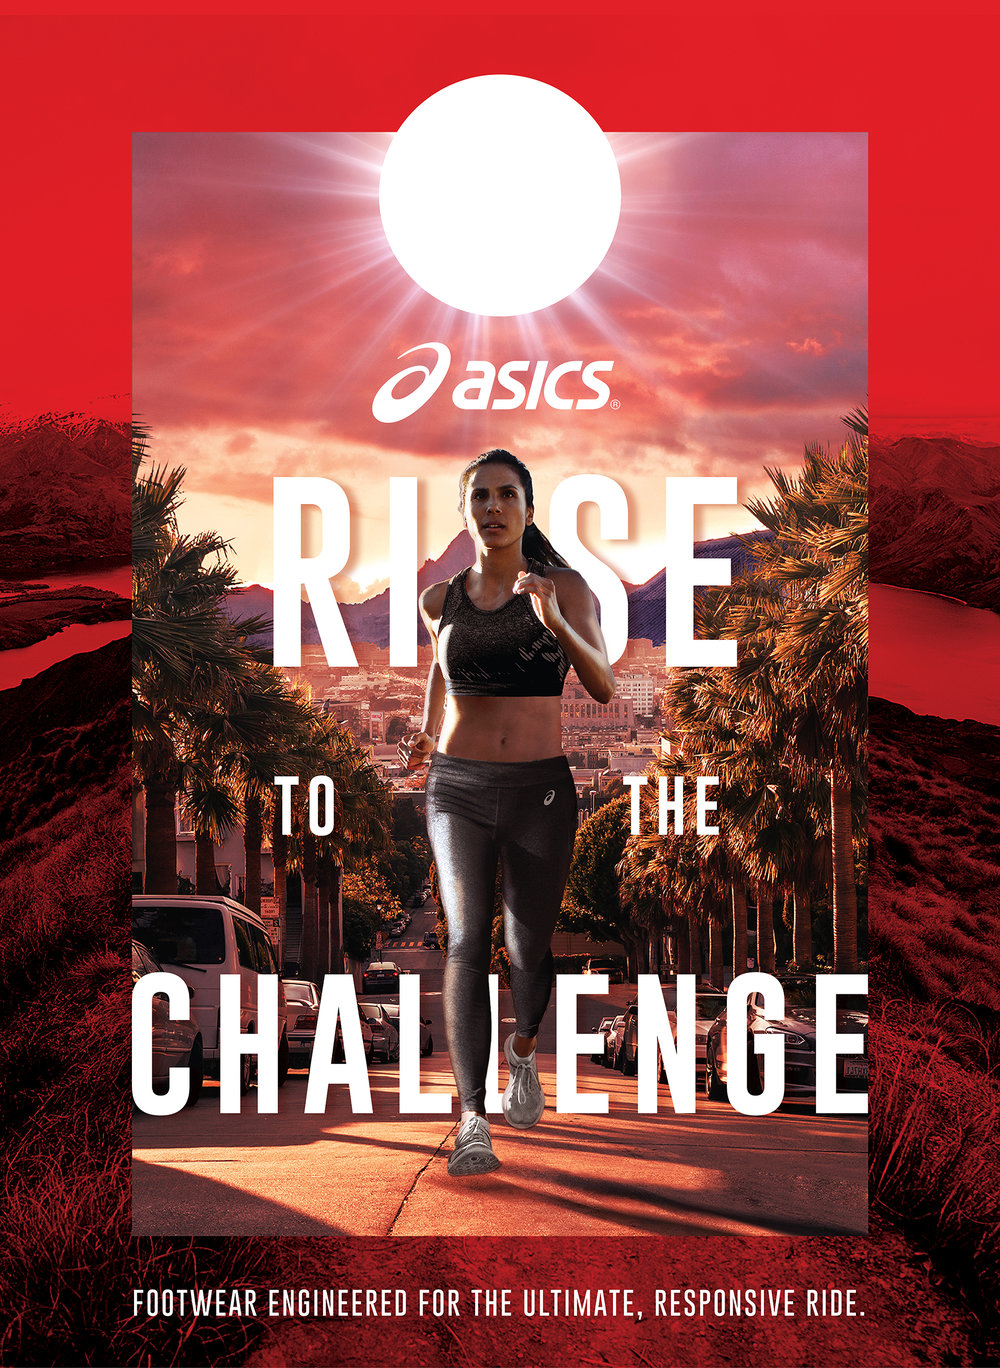 Asics Retail Release Campaign